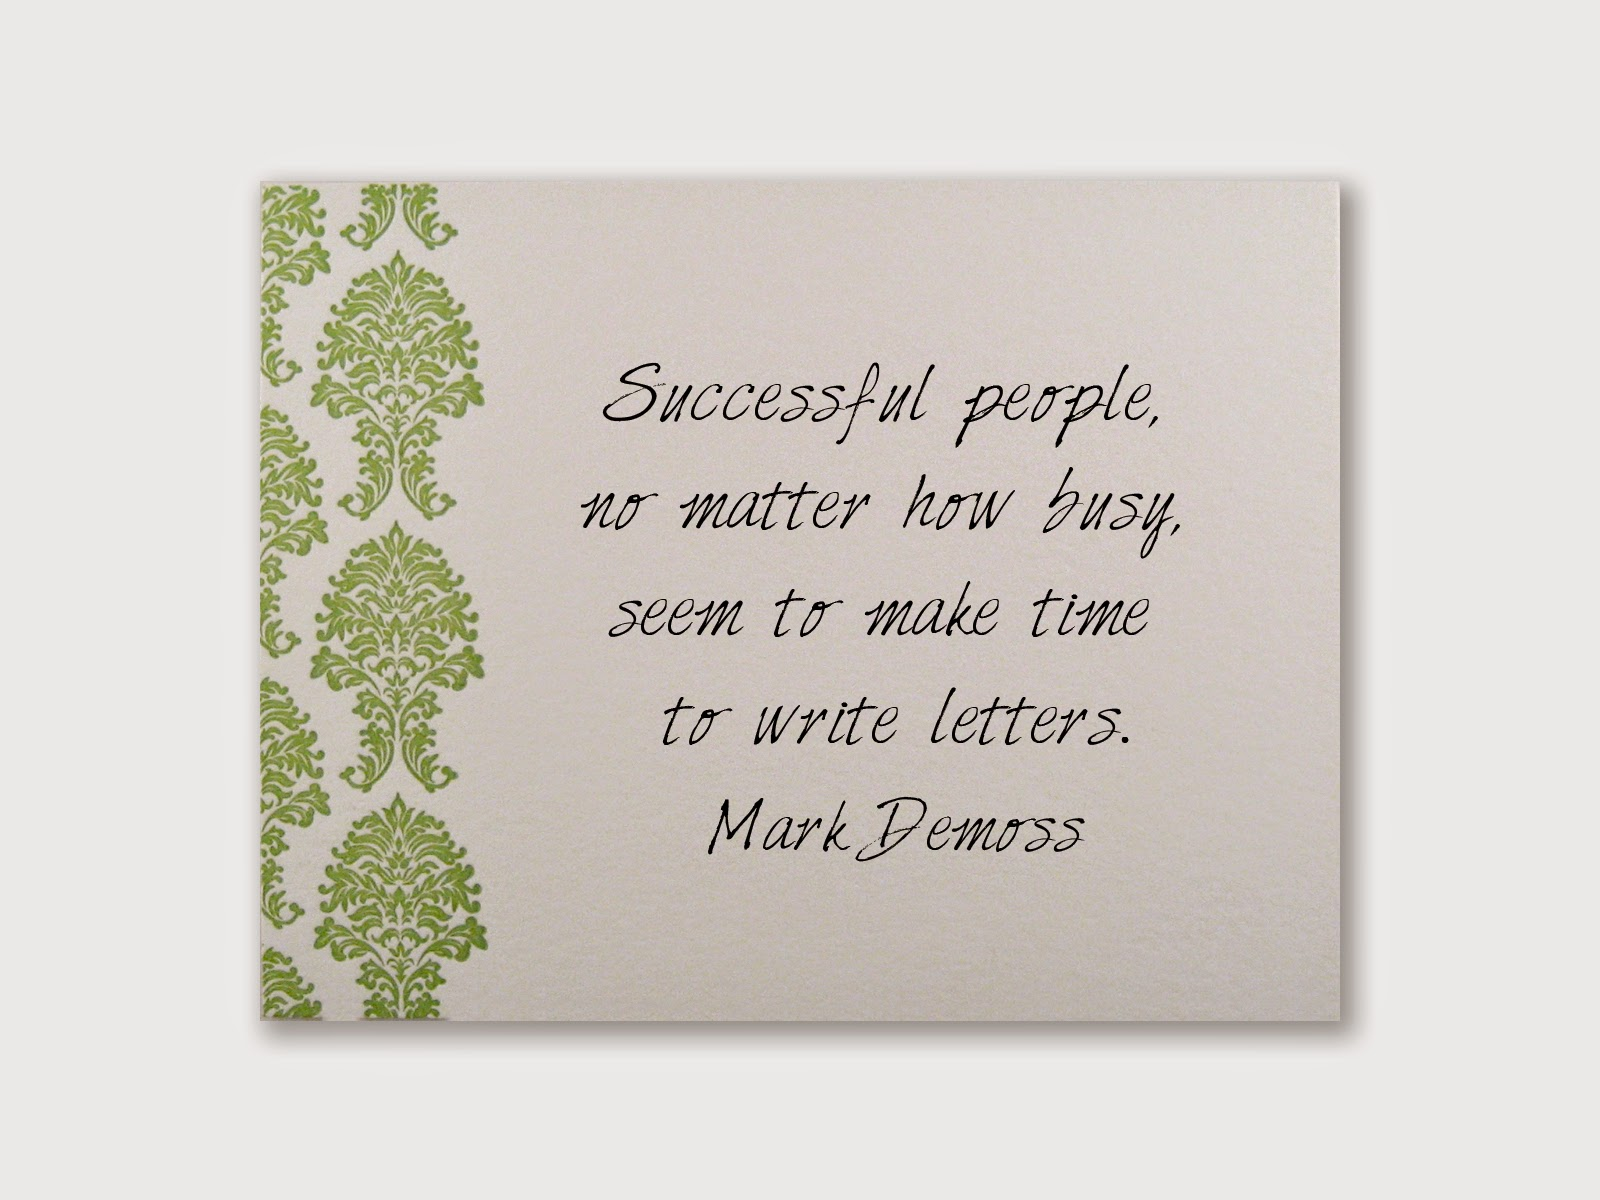 Successful people, no matter how busy, seem to make time to write letters. Mark Demoss